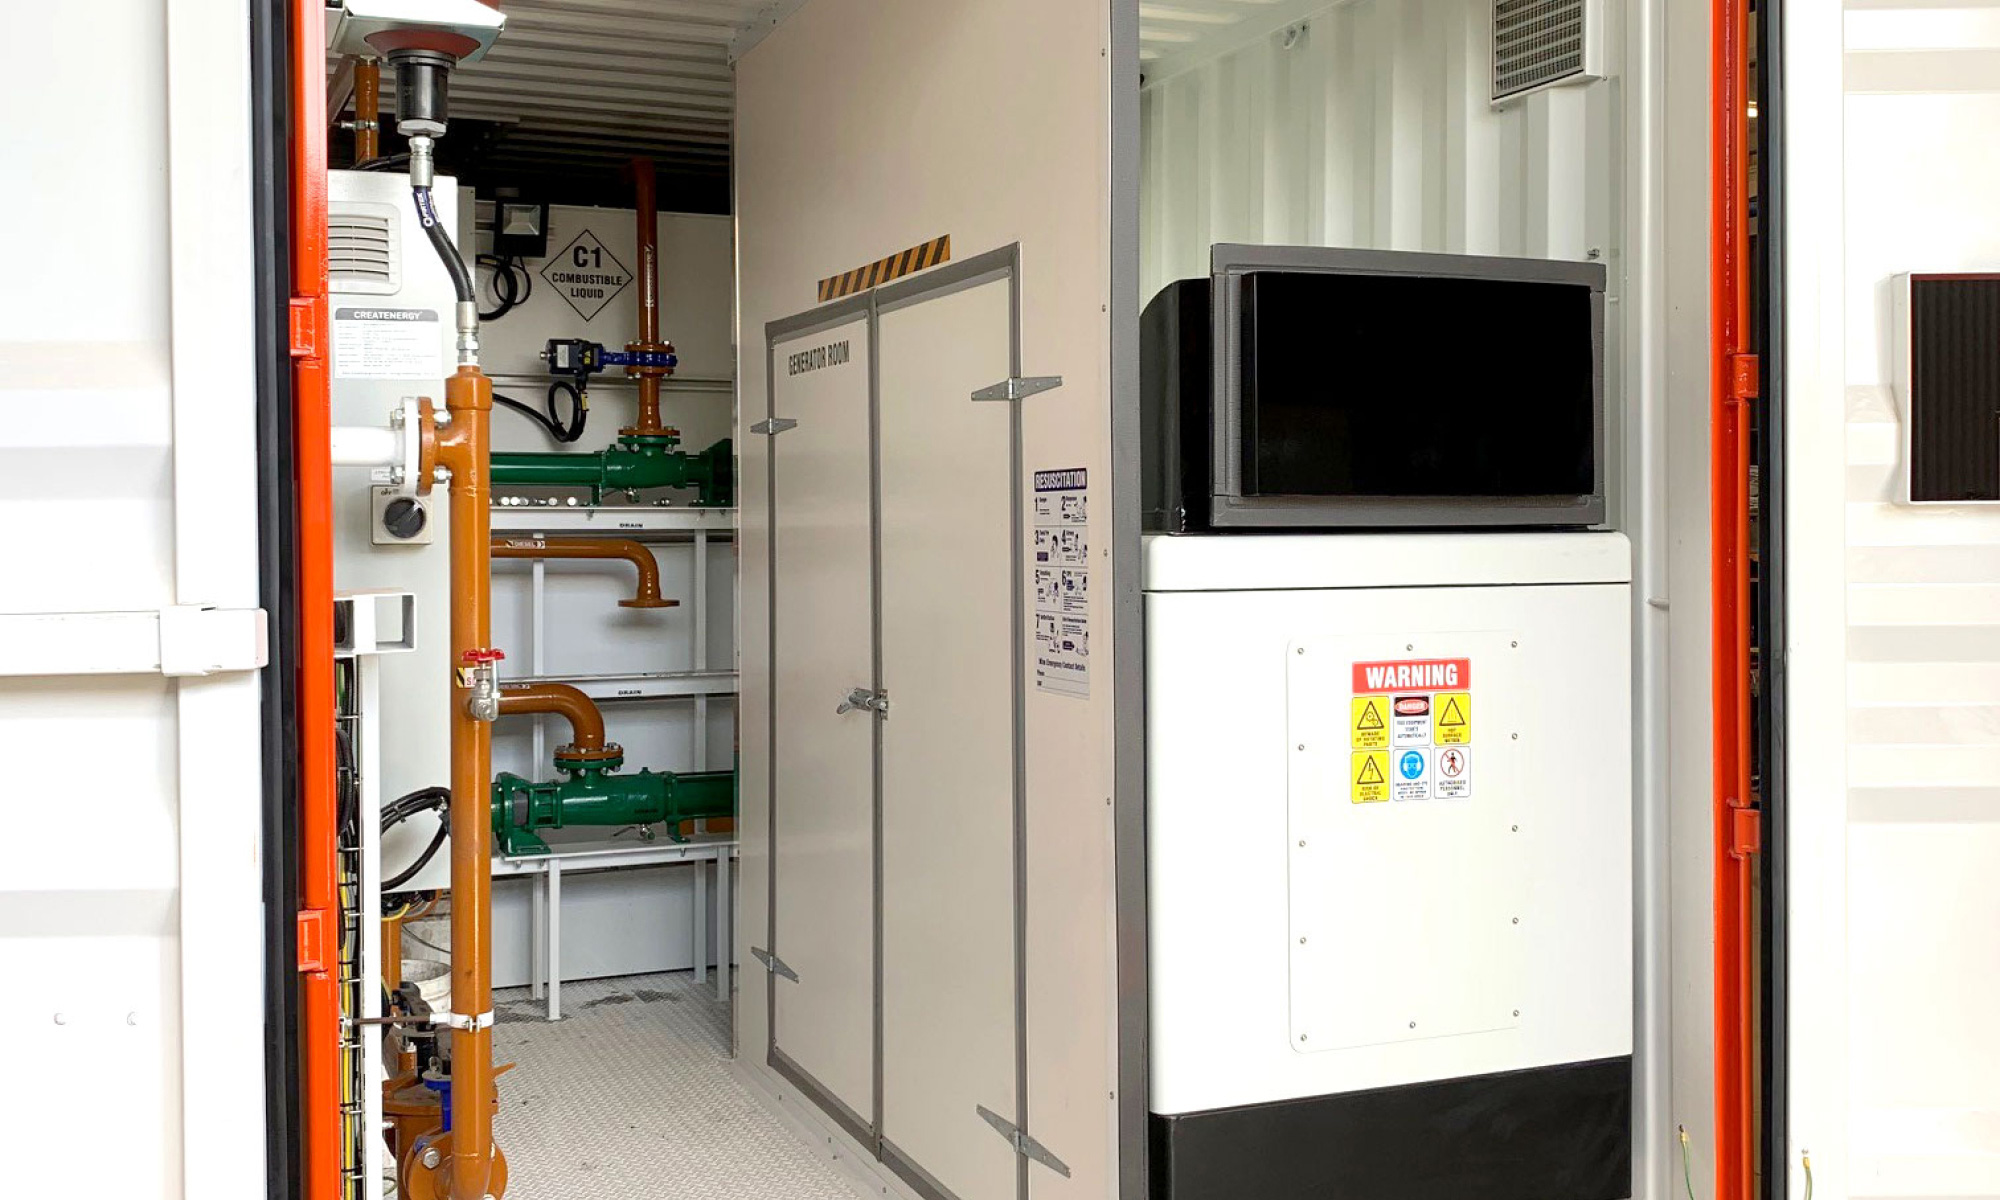 CreatEnergy Container Ready for deployment – A containerised unit near completion